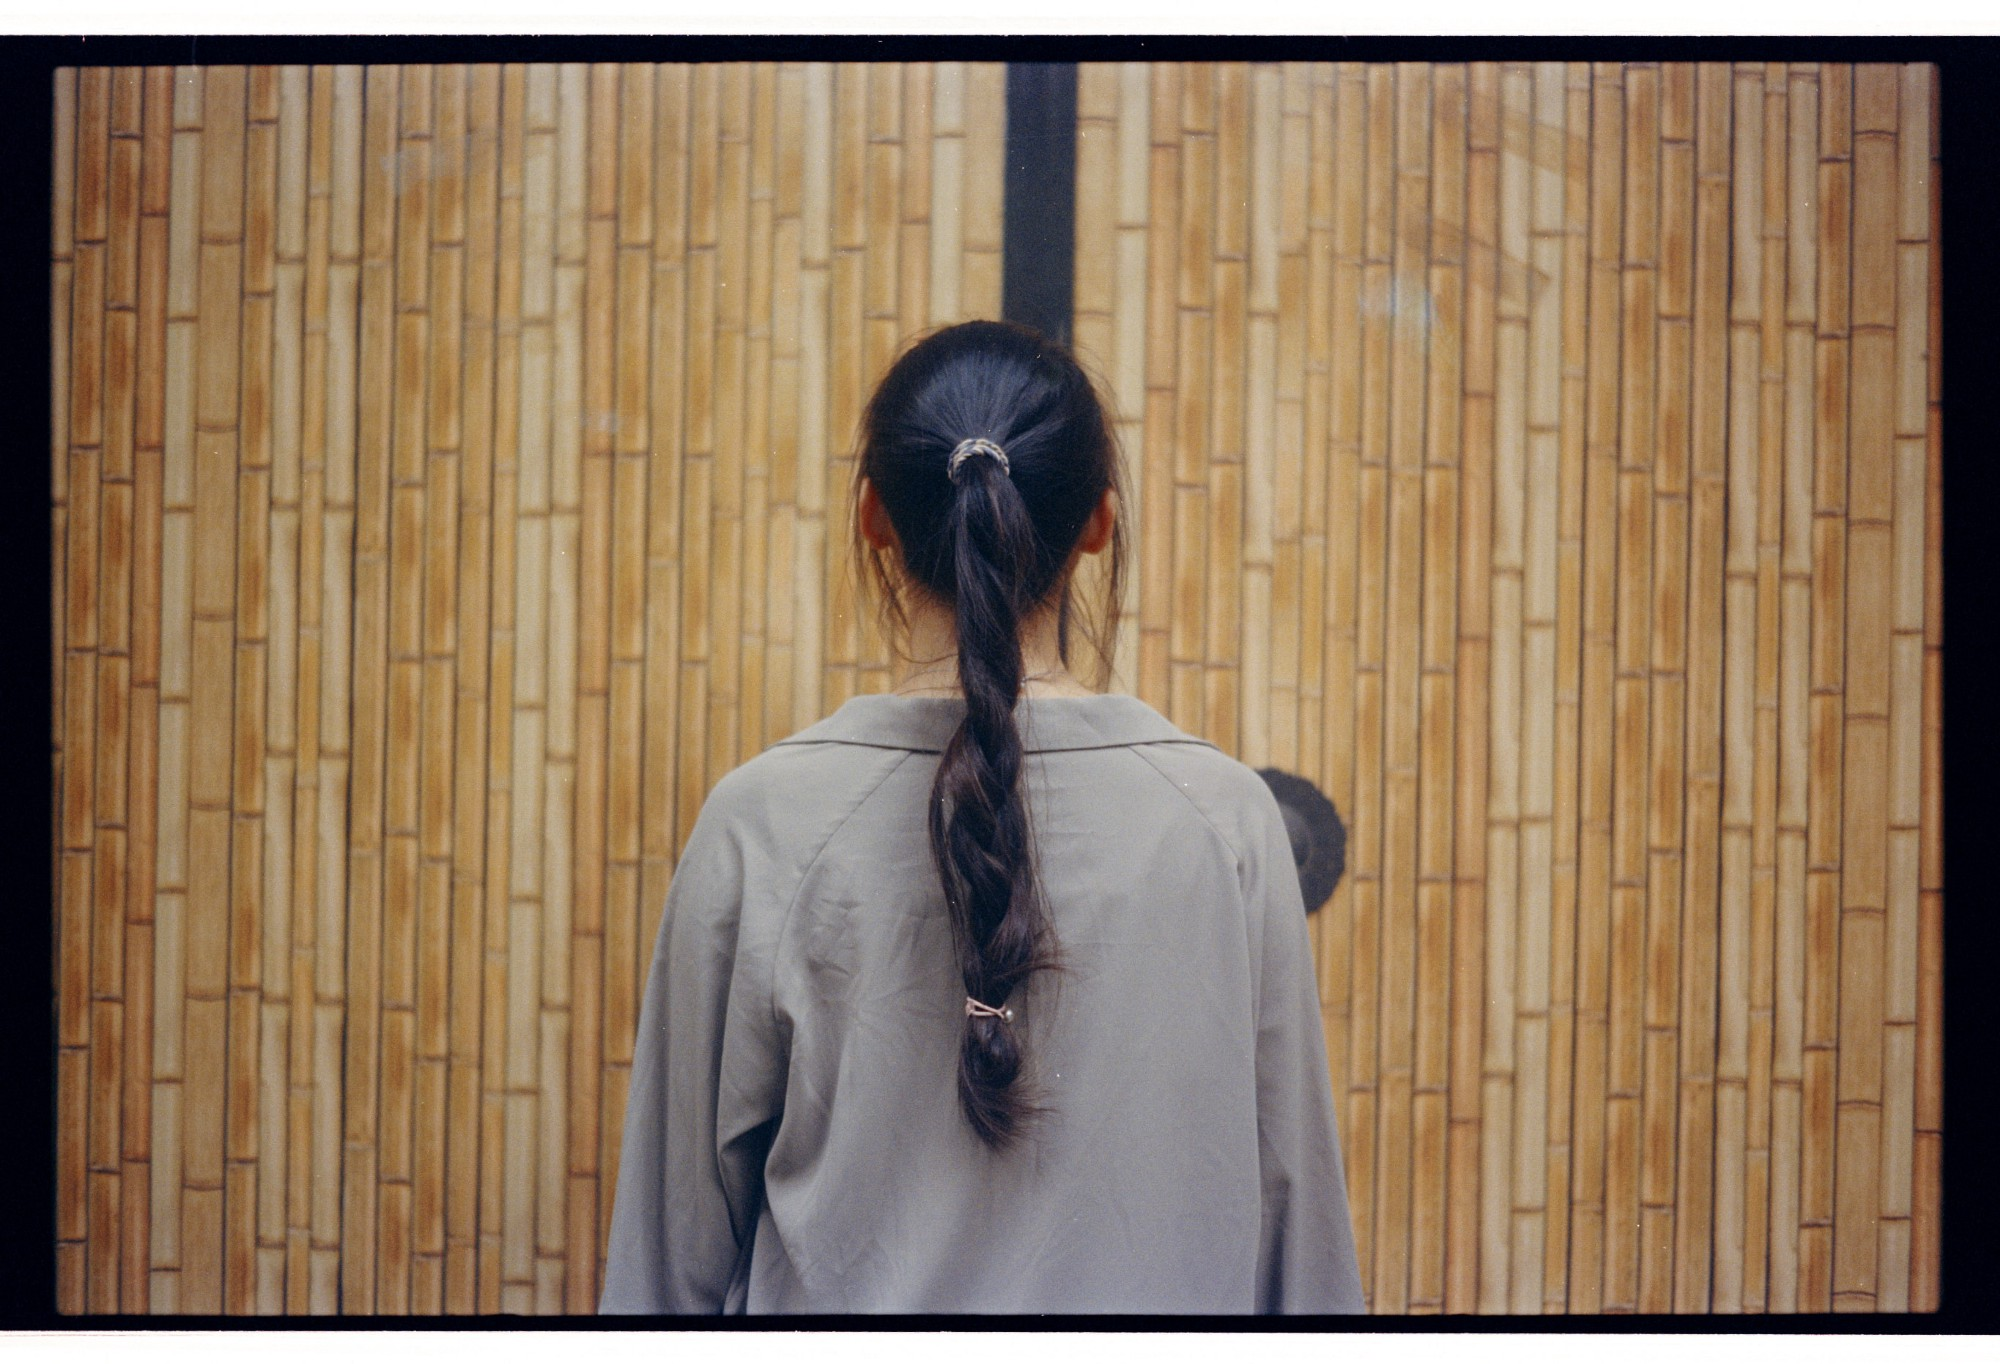 Person with long braid, wearing gray top,  facing closed bamboo door